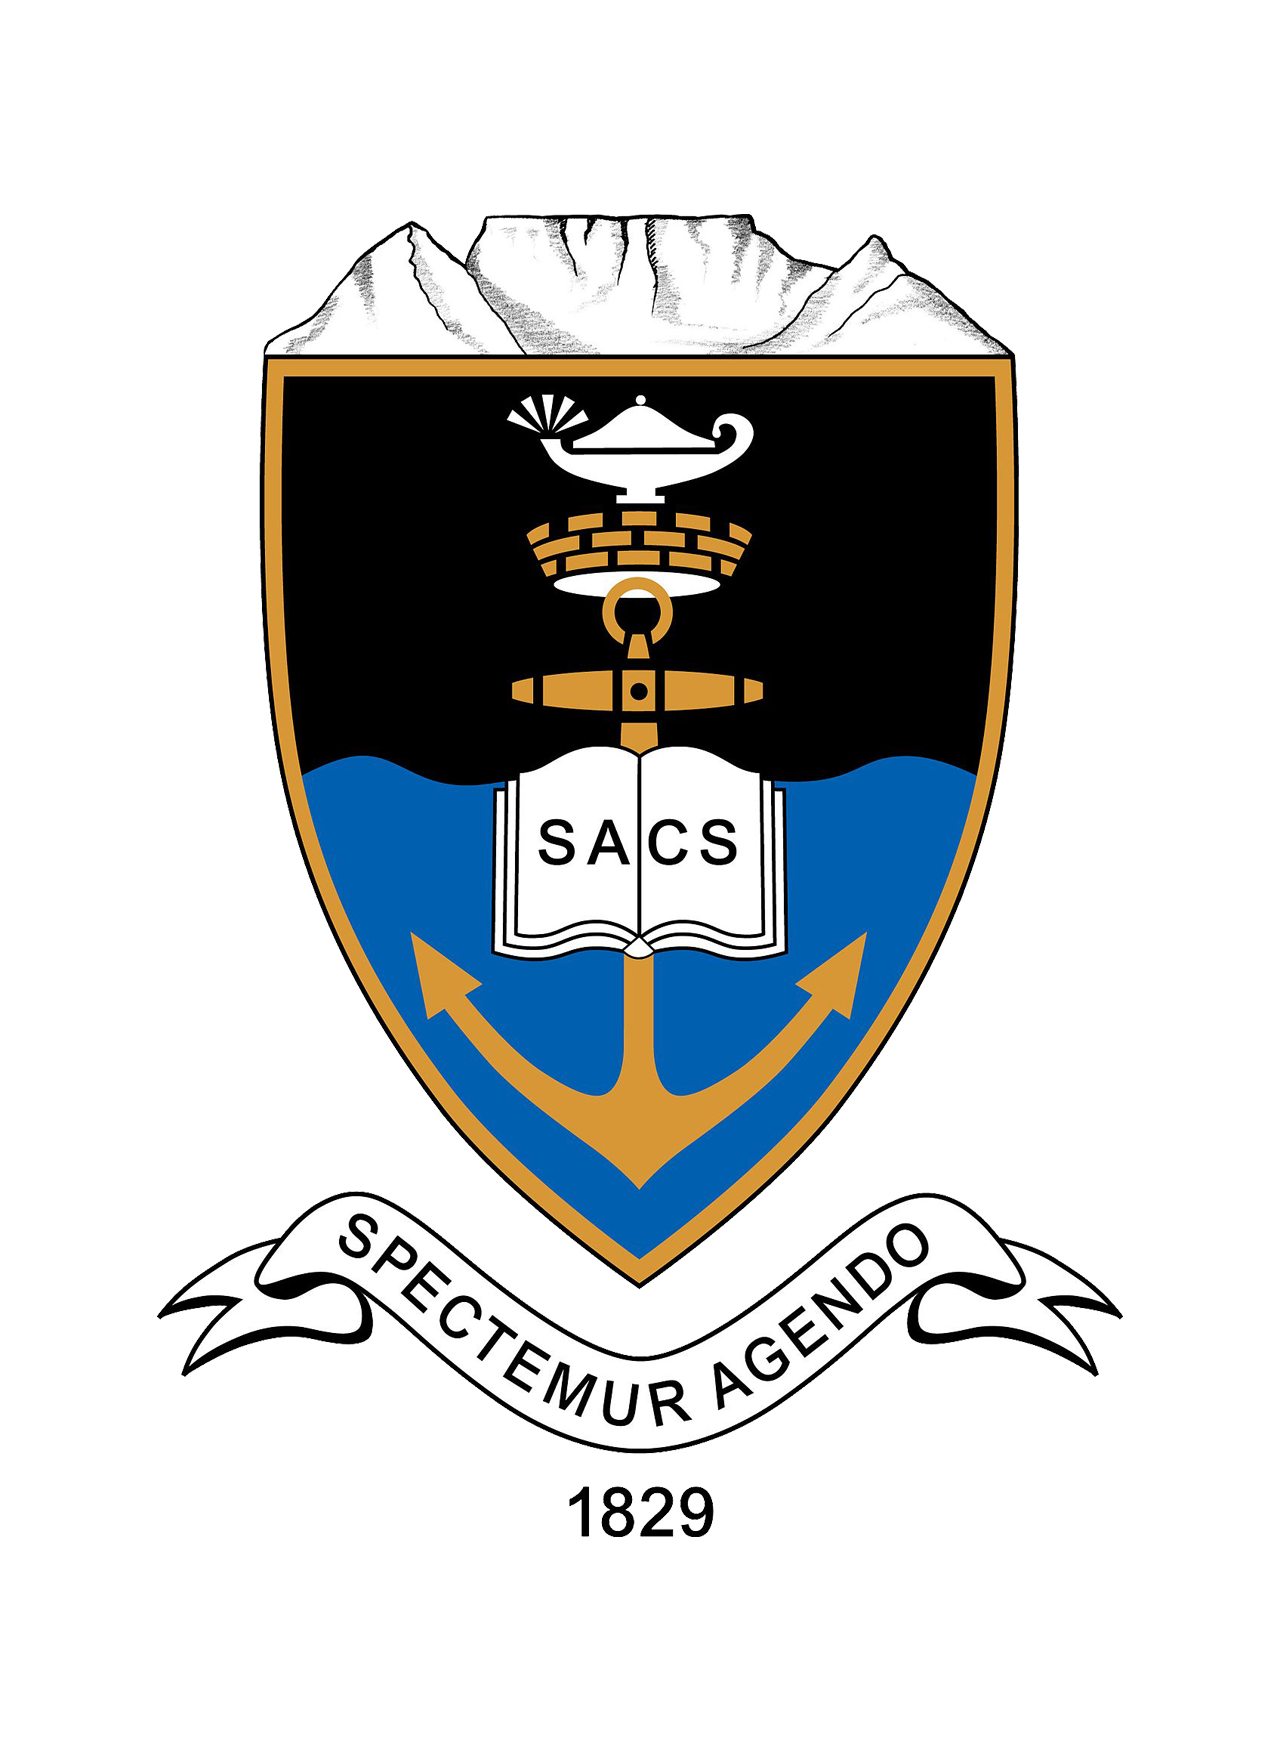 South African College Schools